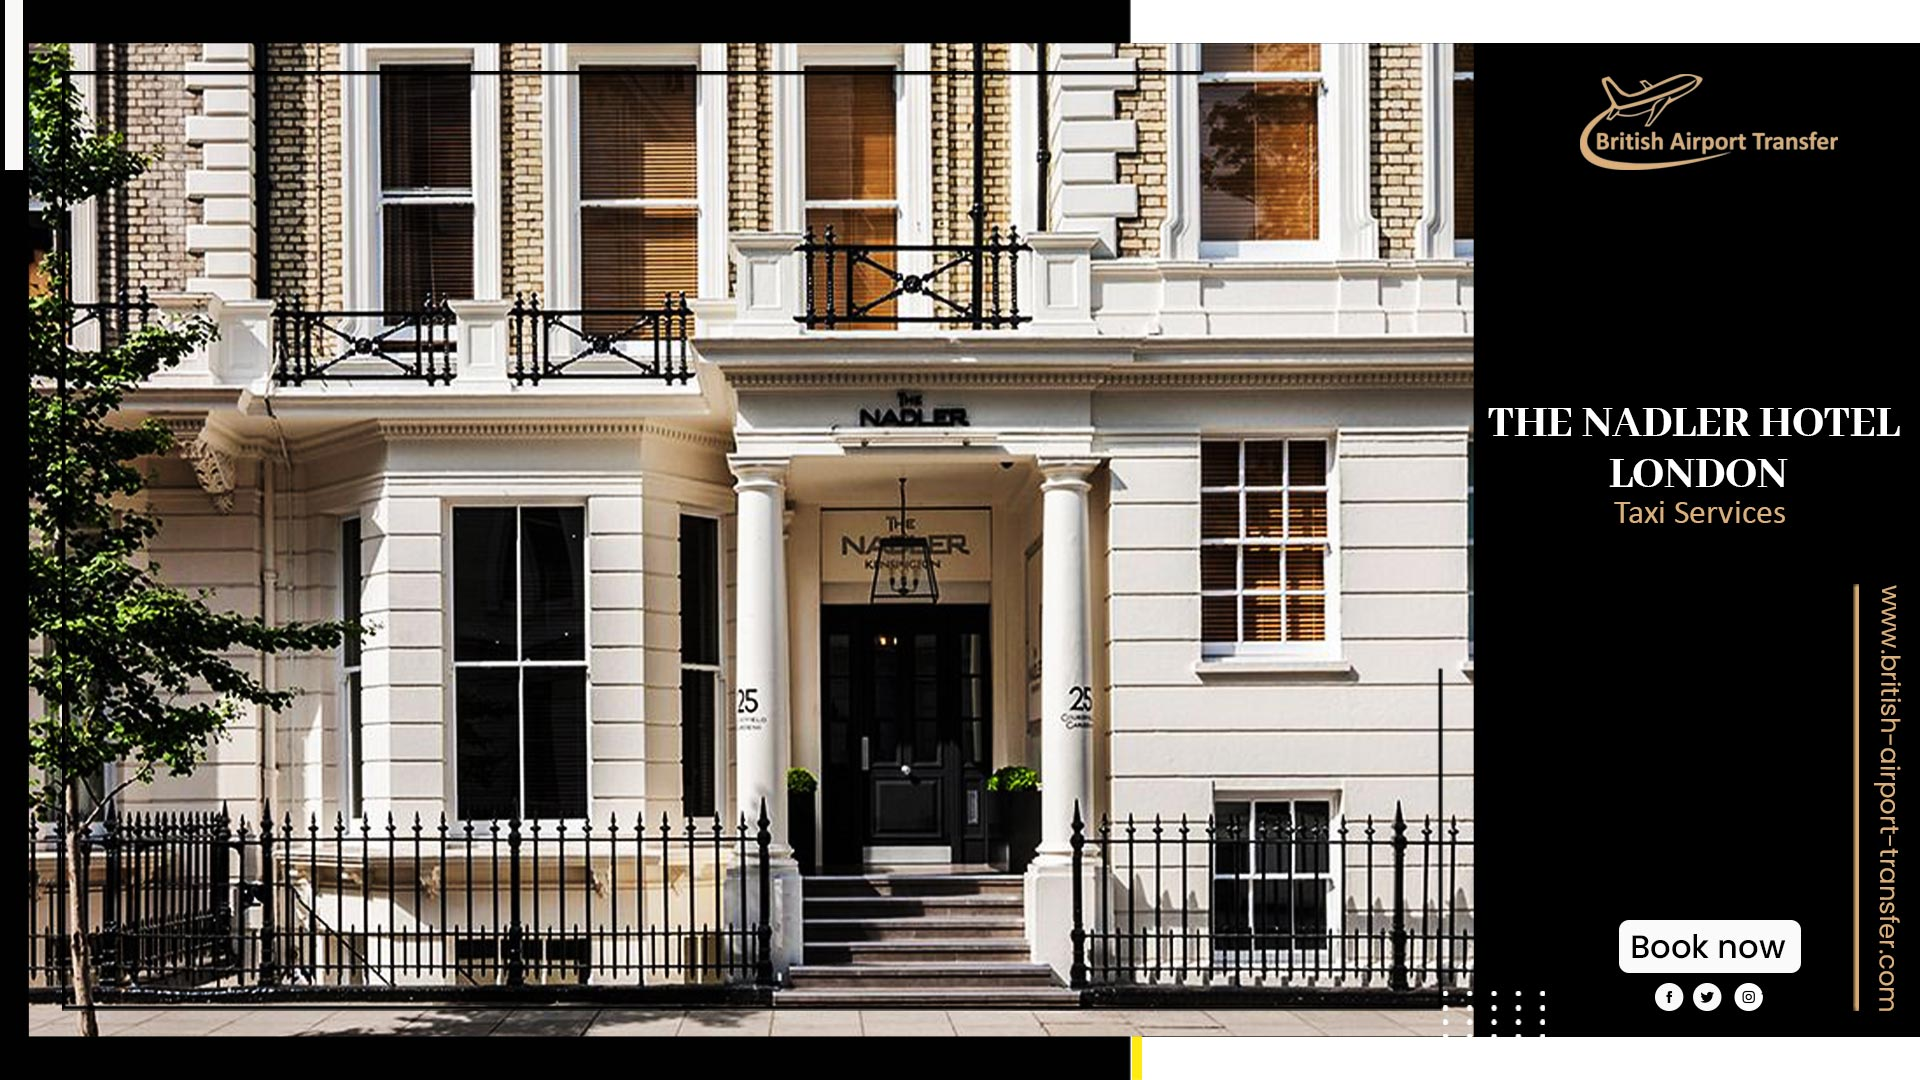 Taxi Cab – The Nadler hotel London